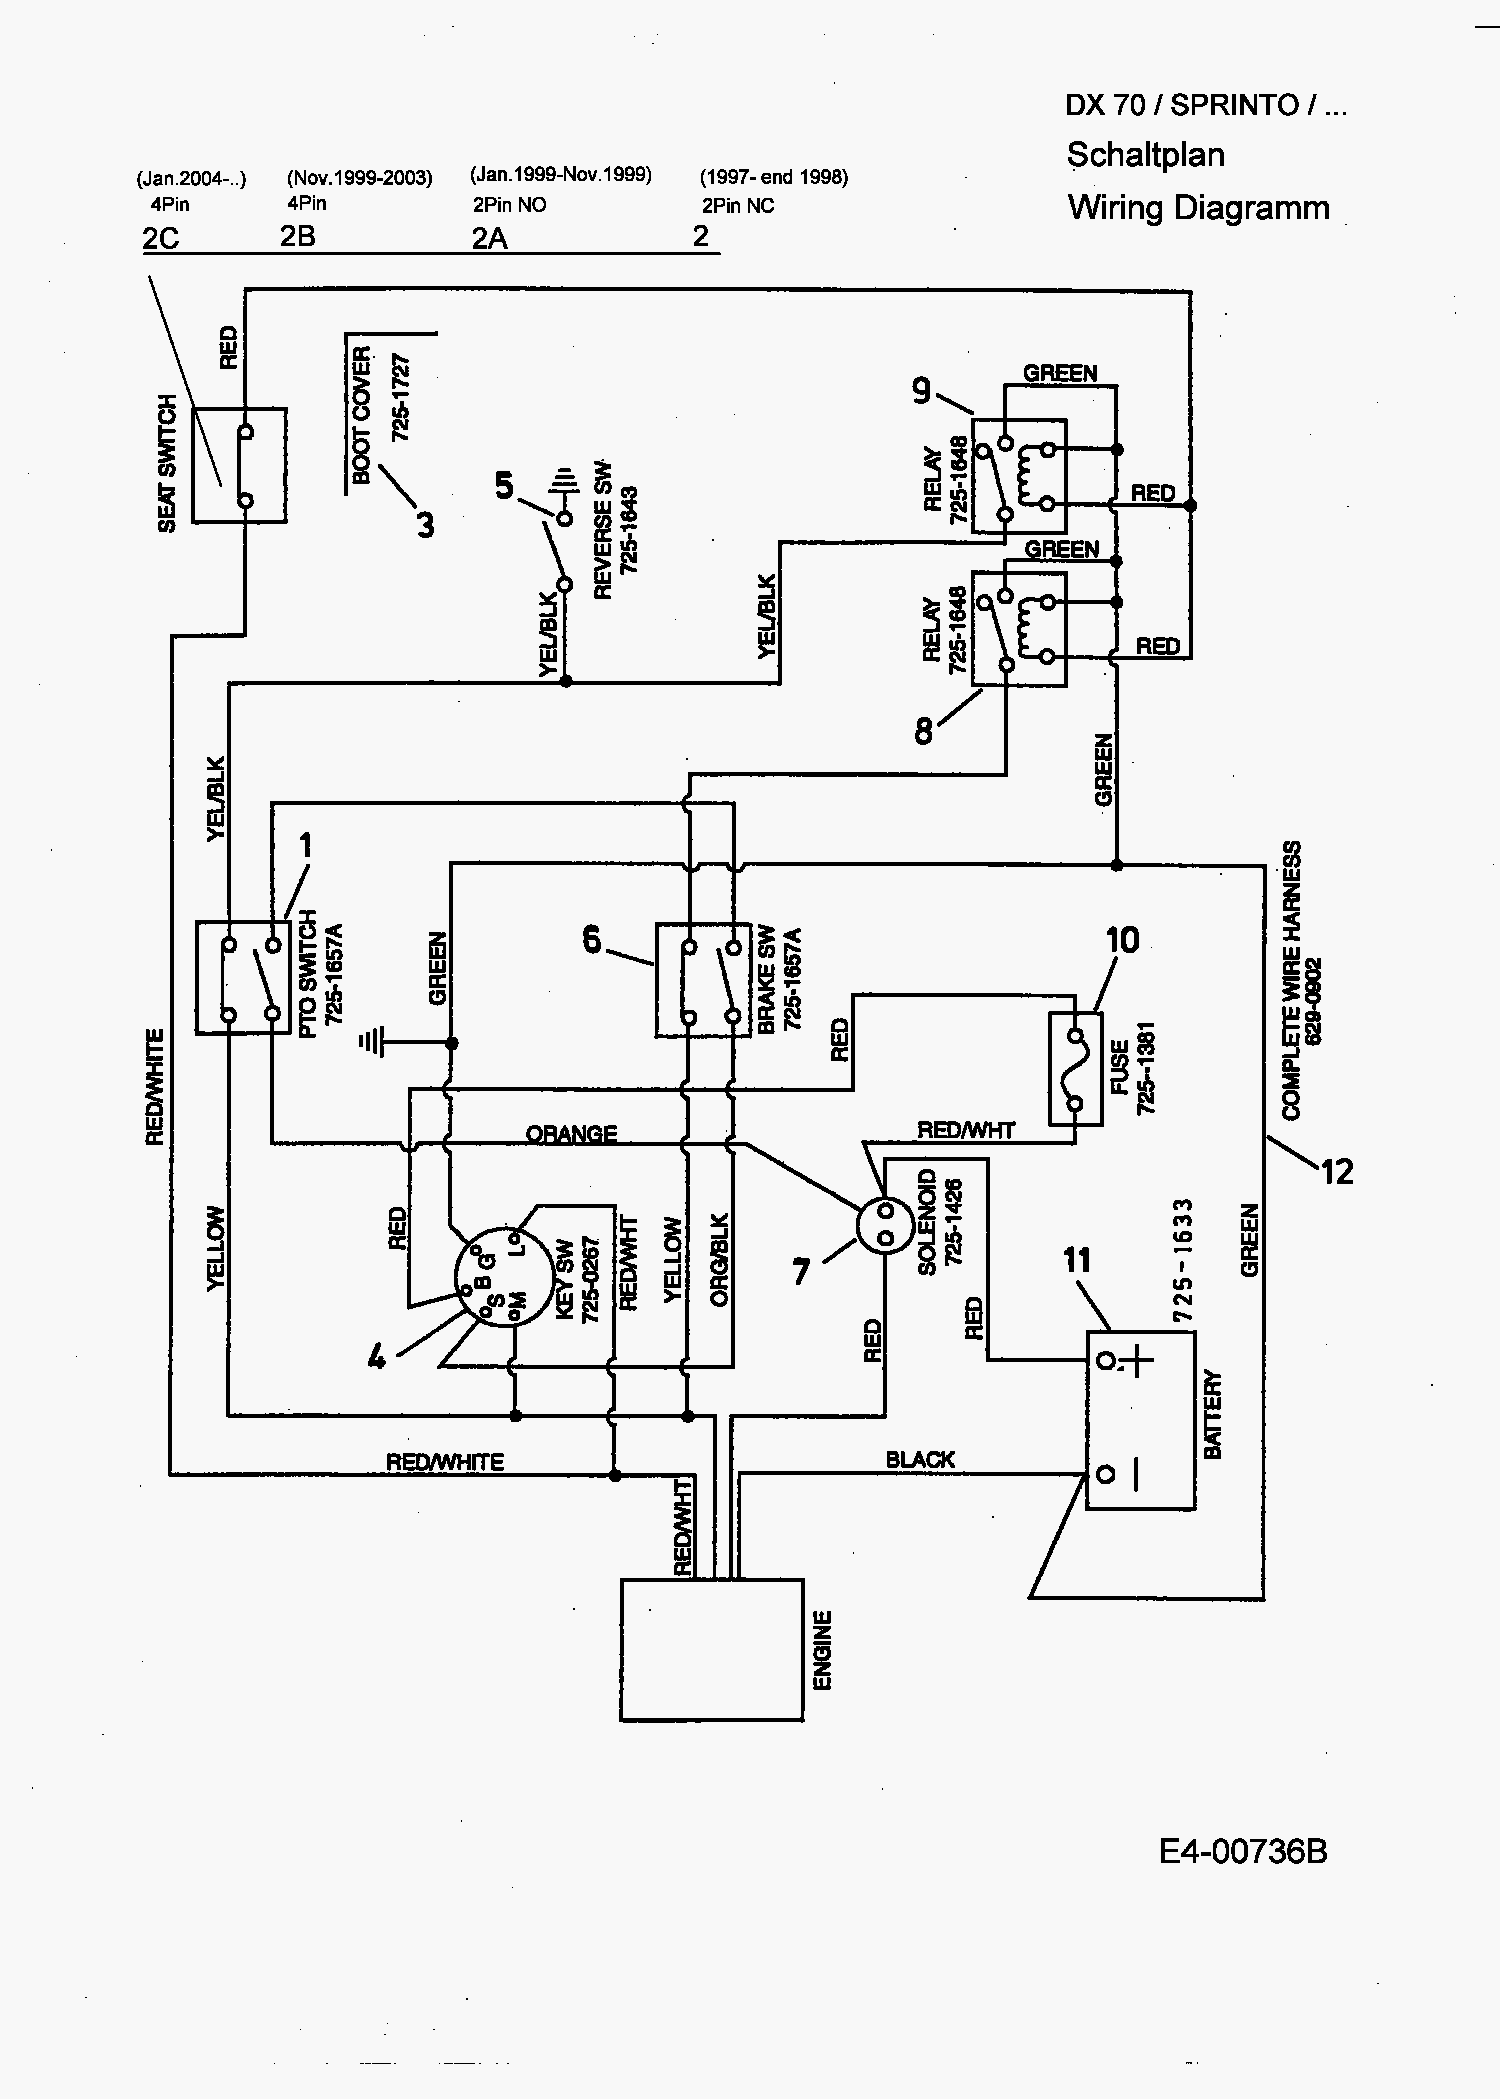 mtd 2150 wiring diagram wiring diagram structure John Deere 110 Wiring Diagram